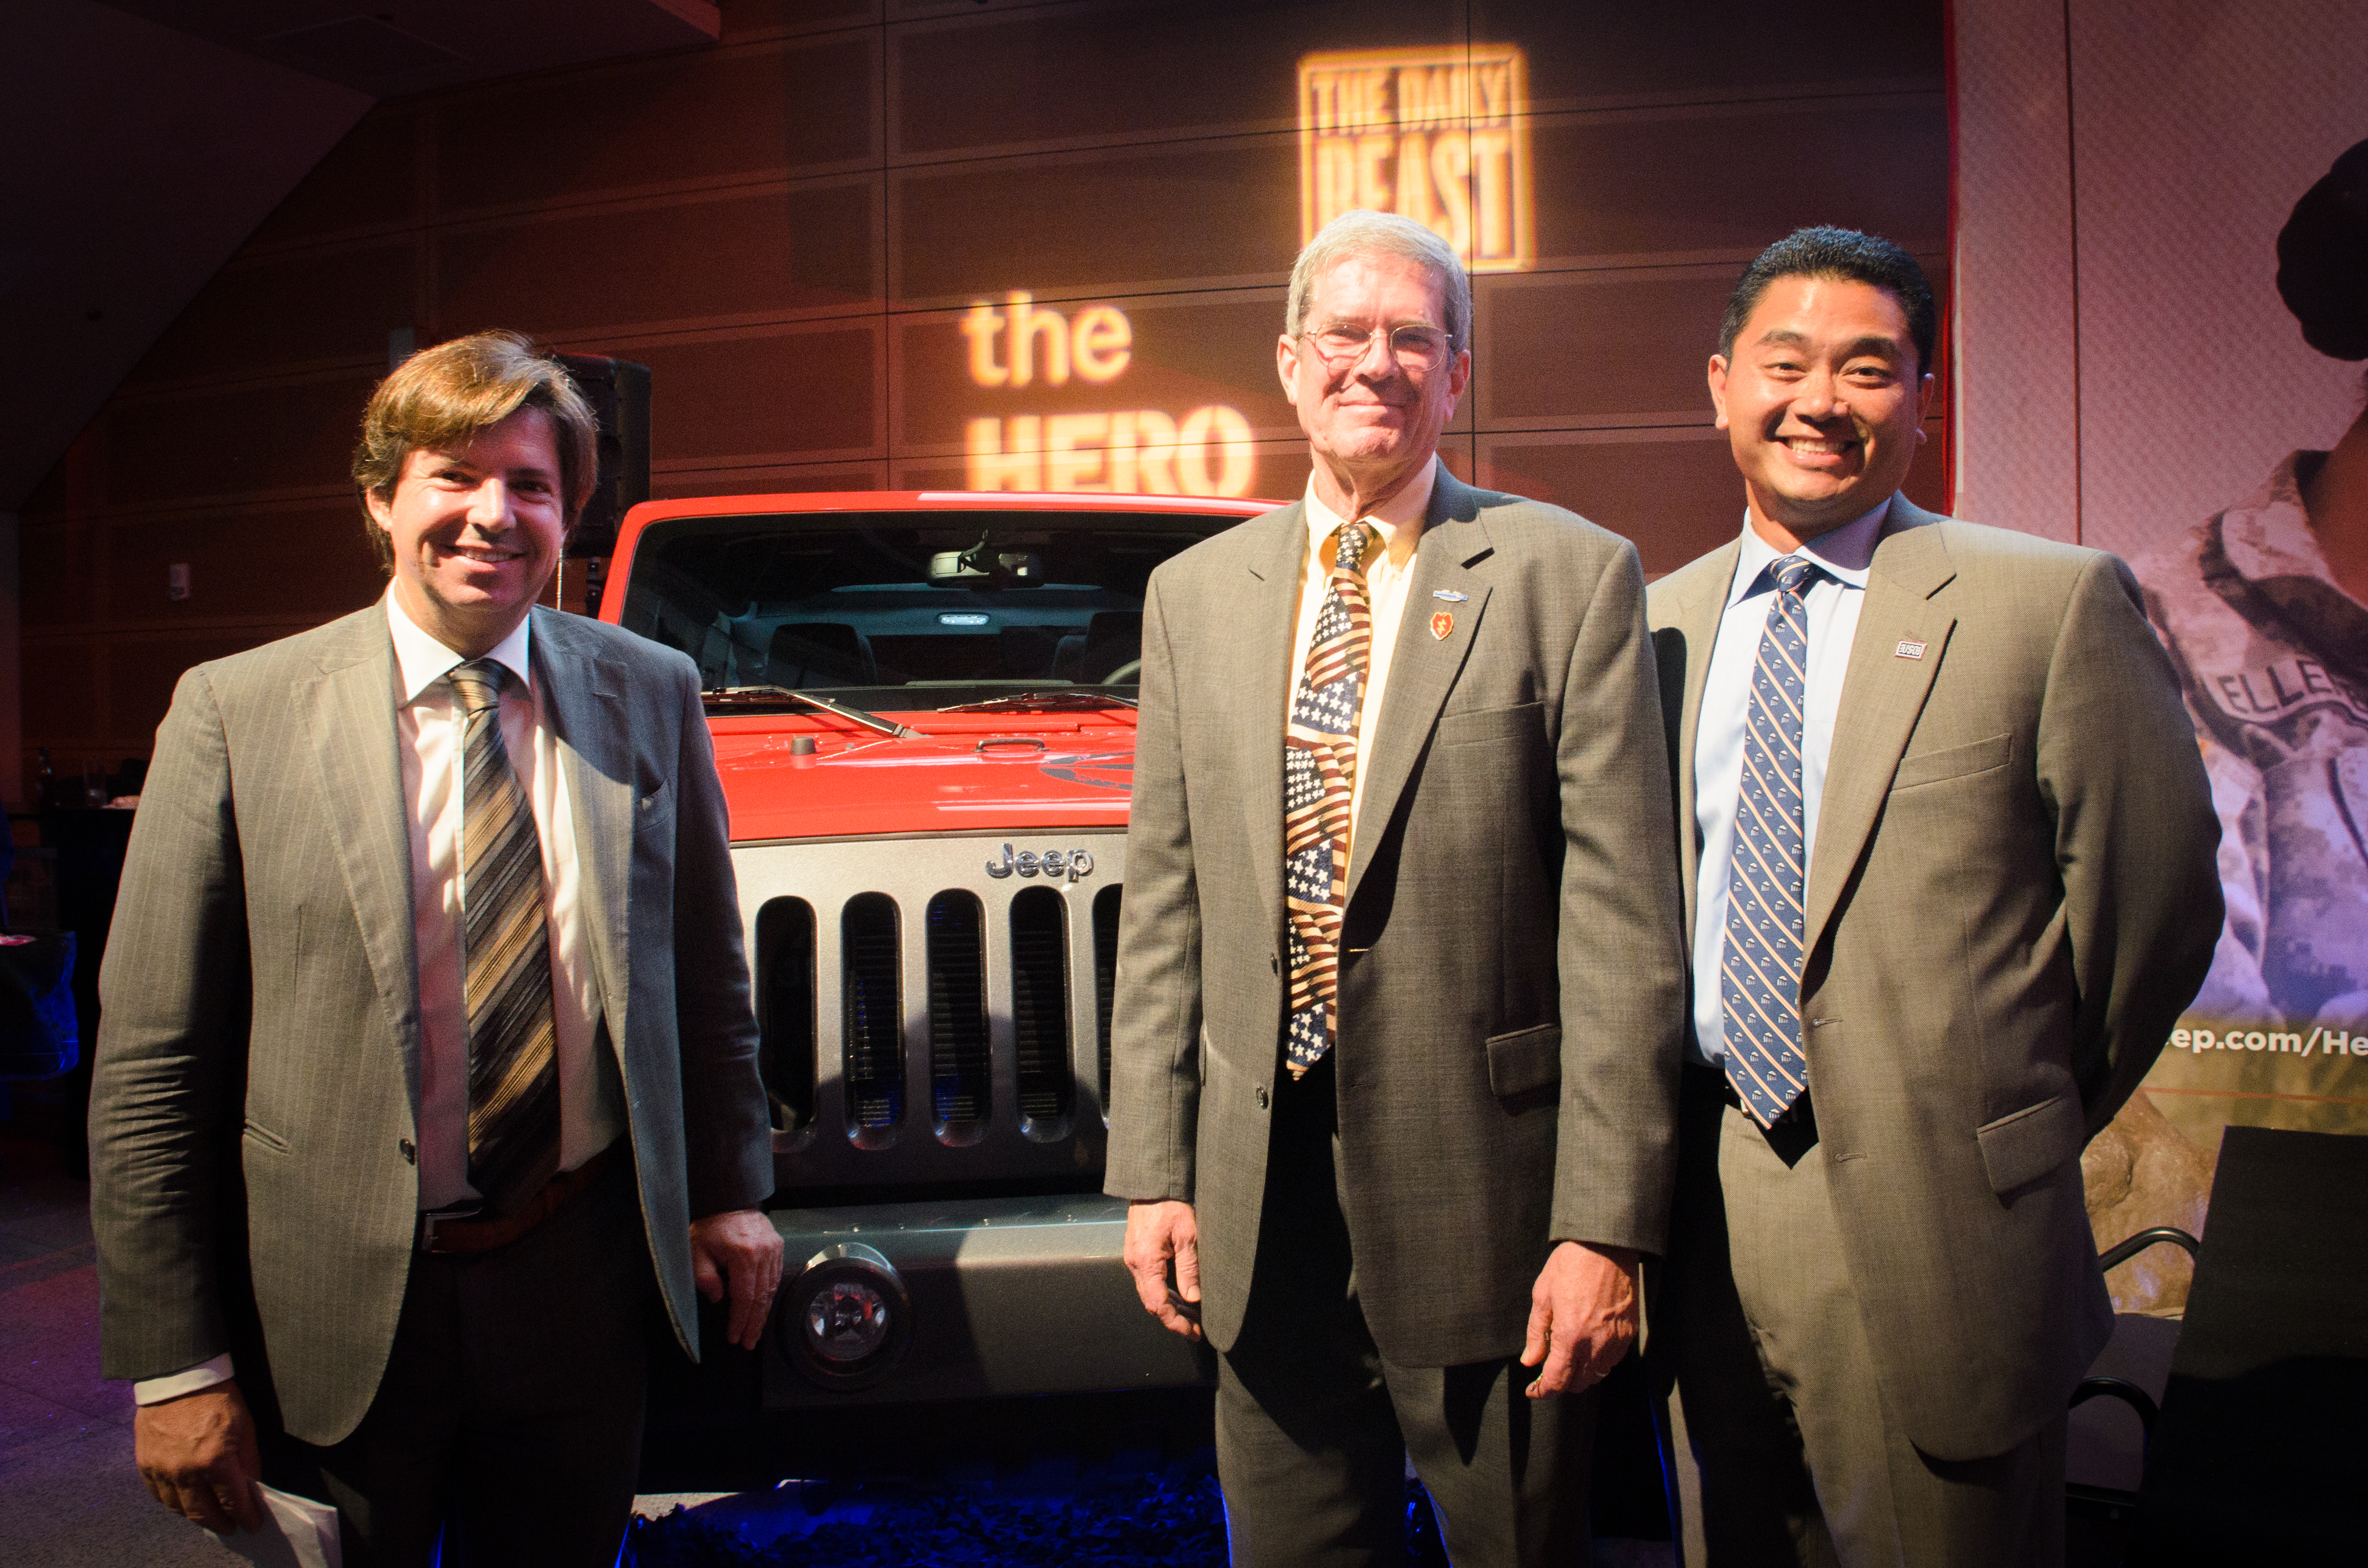 Norm Hallowell, center, poses with the USO's Senior Vice President of Operations Alan Reyes, right, and Chrysler Chief Marketing Officer Olivier Francois, after winning a new Jeep Wrangler on Oct. 11 in Washington. (Photo courtesy of Jeep)